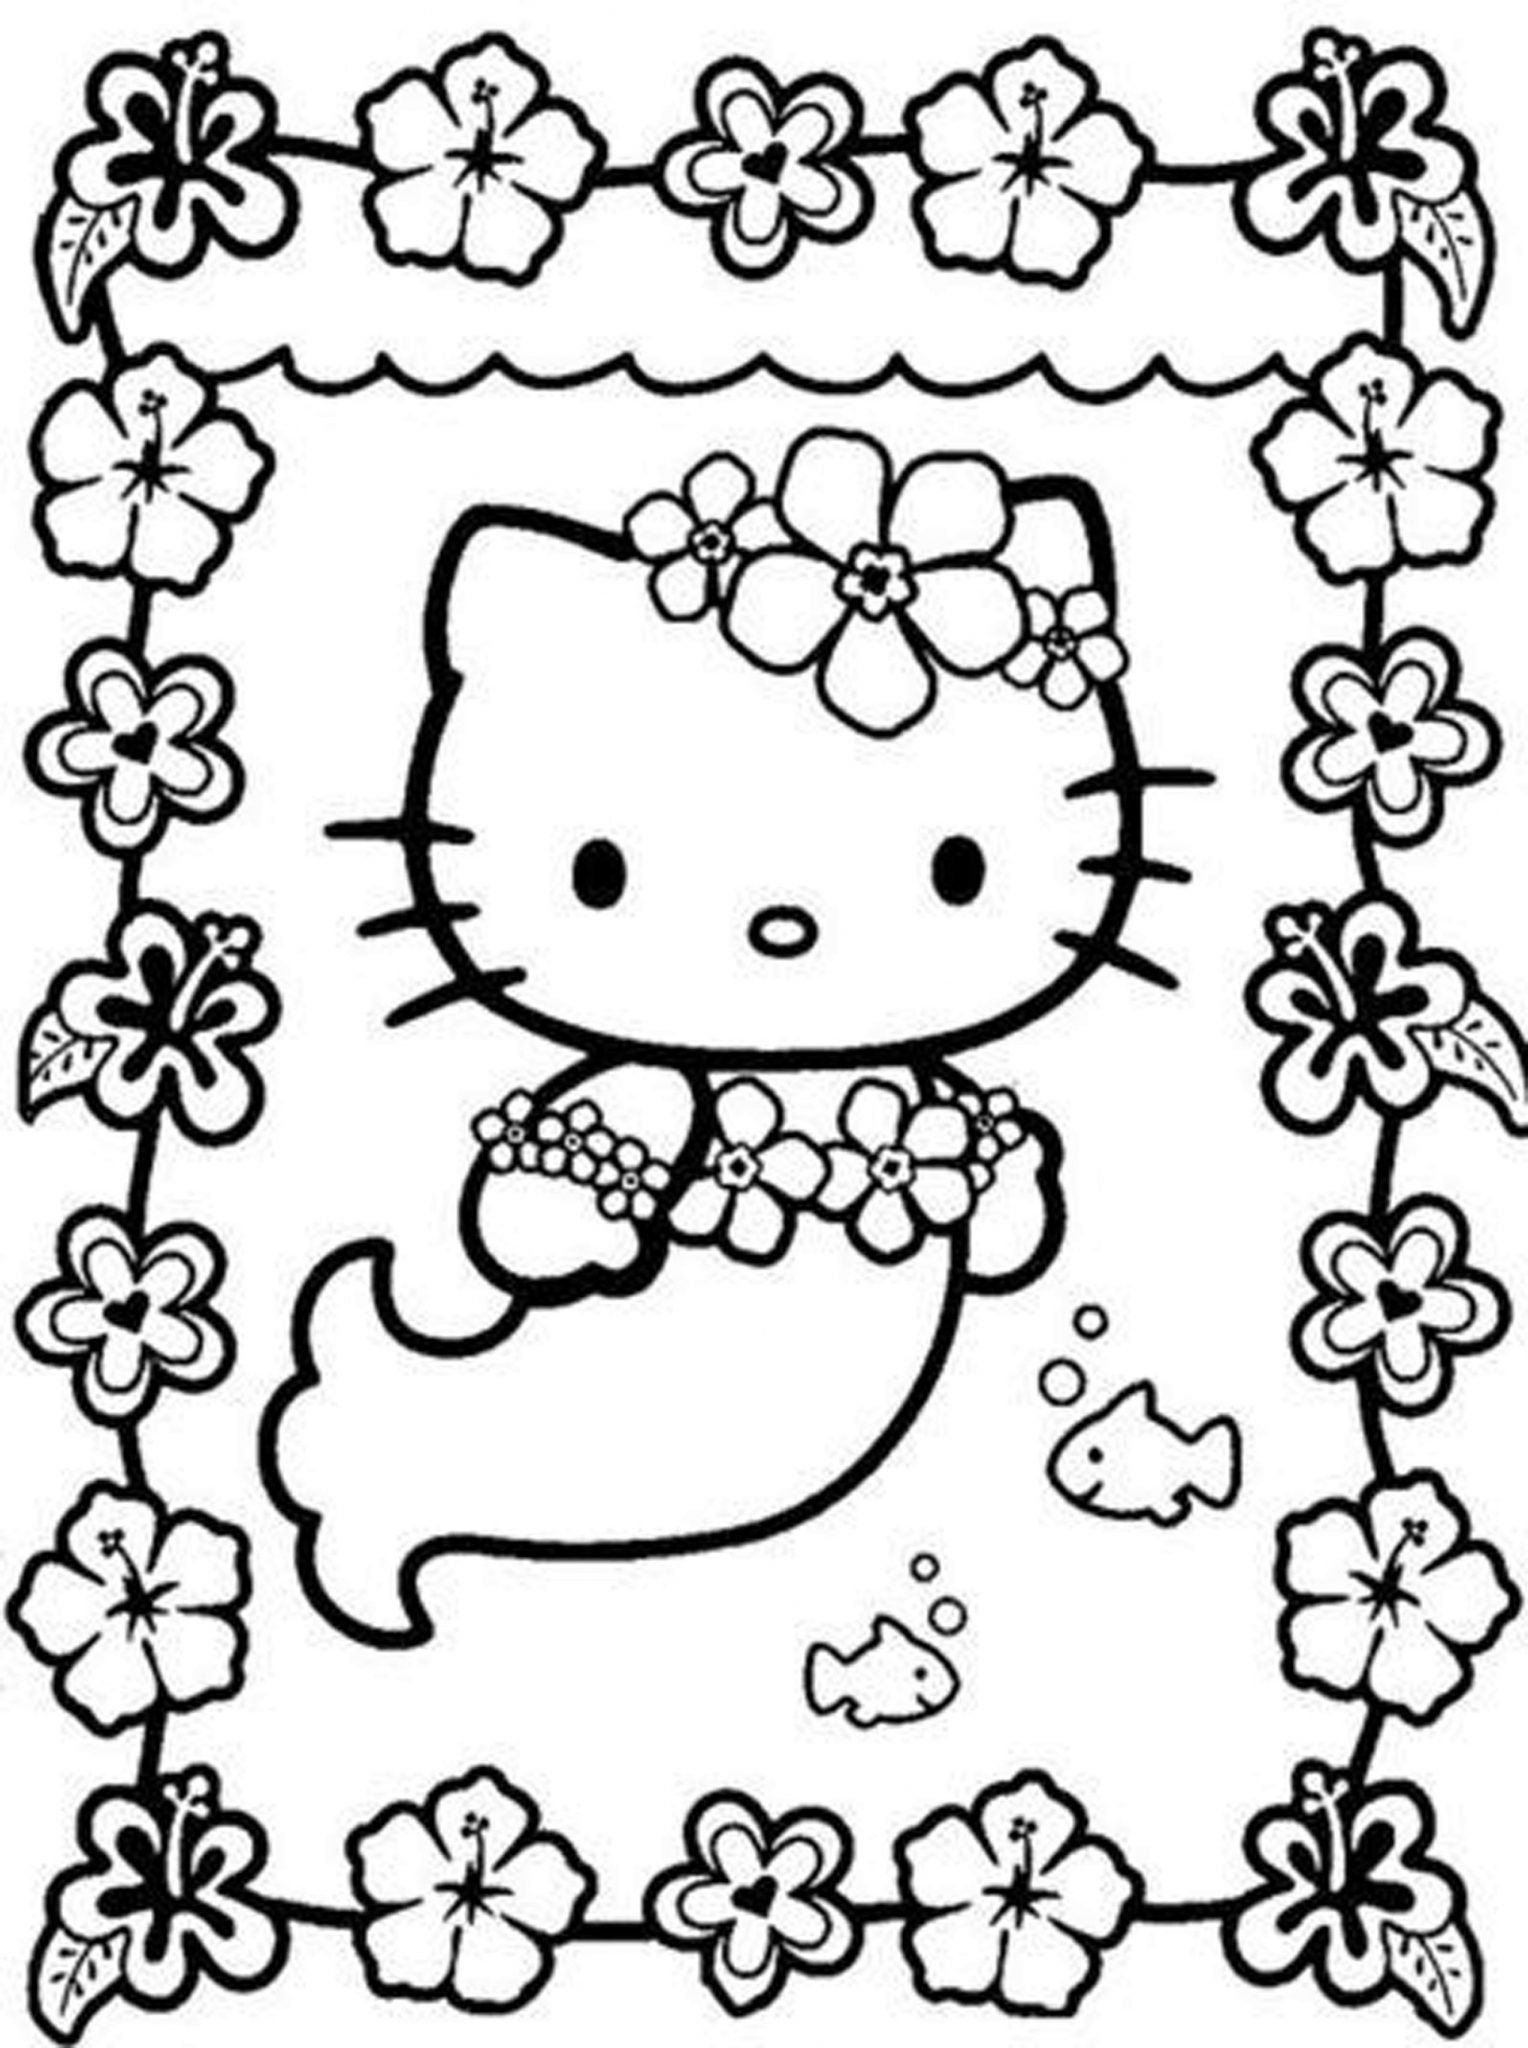 Hello Kitty Coloring Pages Hello Kitty Coloring Pages For Girls Hello Kitty Coloring Kitty Coloring Mermaid Coloring Pages